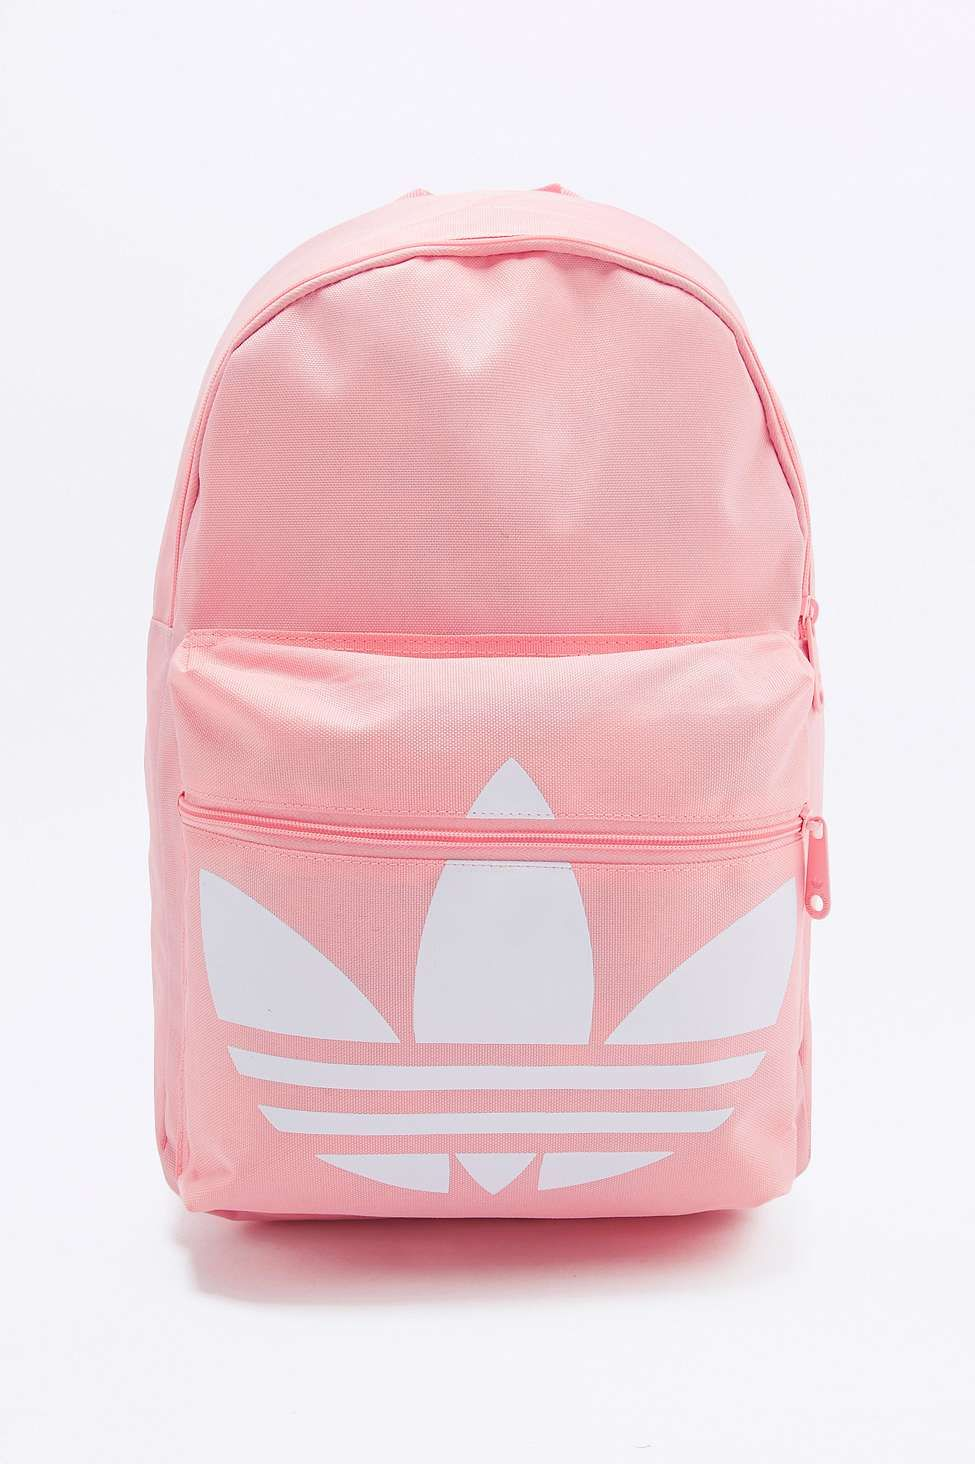 adidas originals sac dos avec logo tr fle rose en 2019. Black Bedroom Furniture Sets. Home Design Ideas